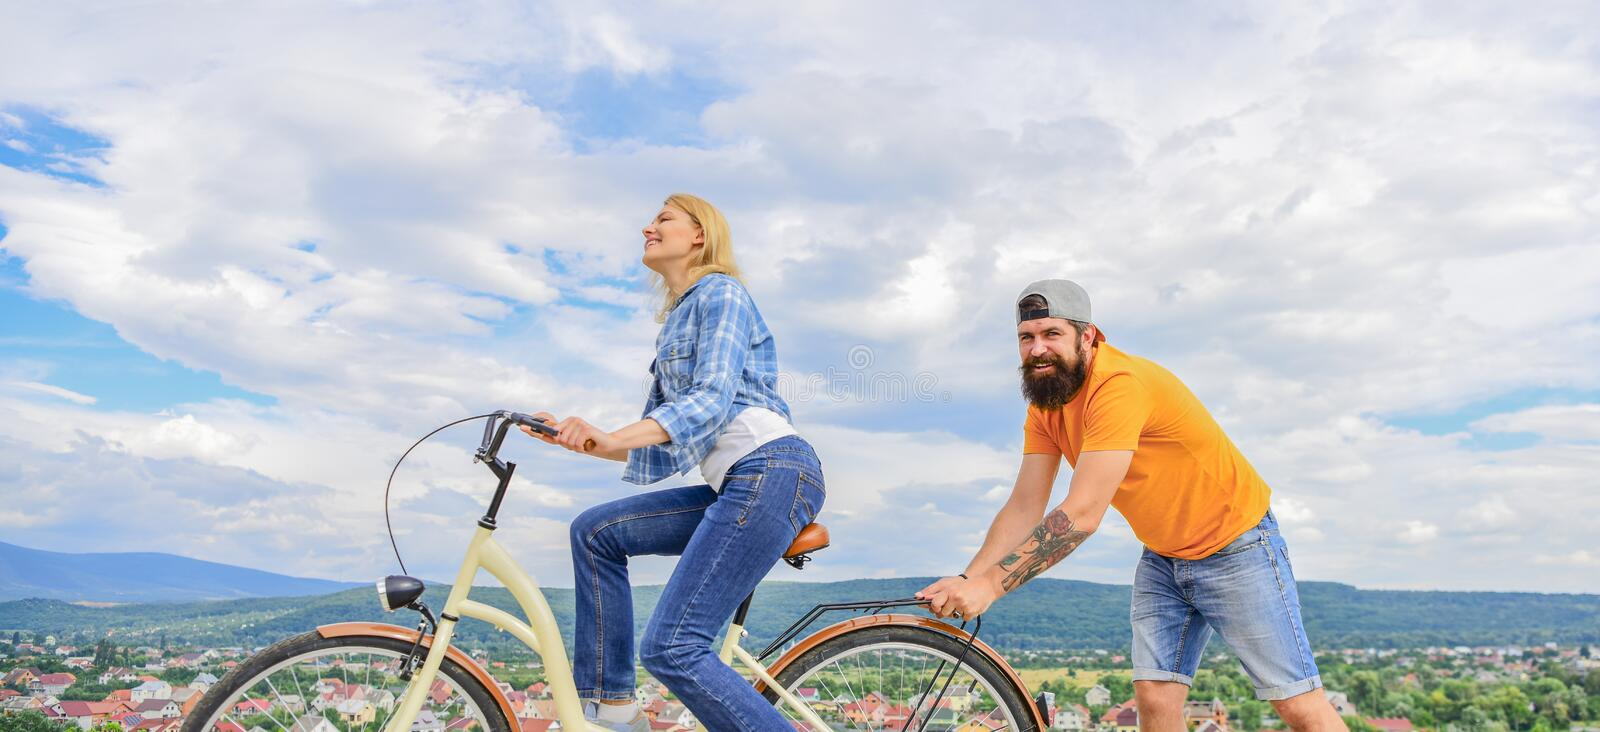 Push and promoting. Impulse to move. Man pushes girl ride bike. Support helps believe in yourself. Feel impulse to start stock photography